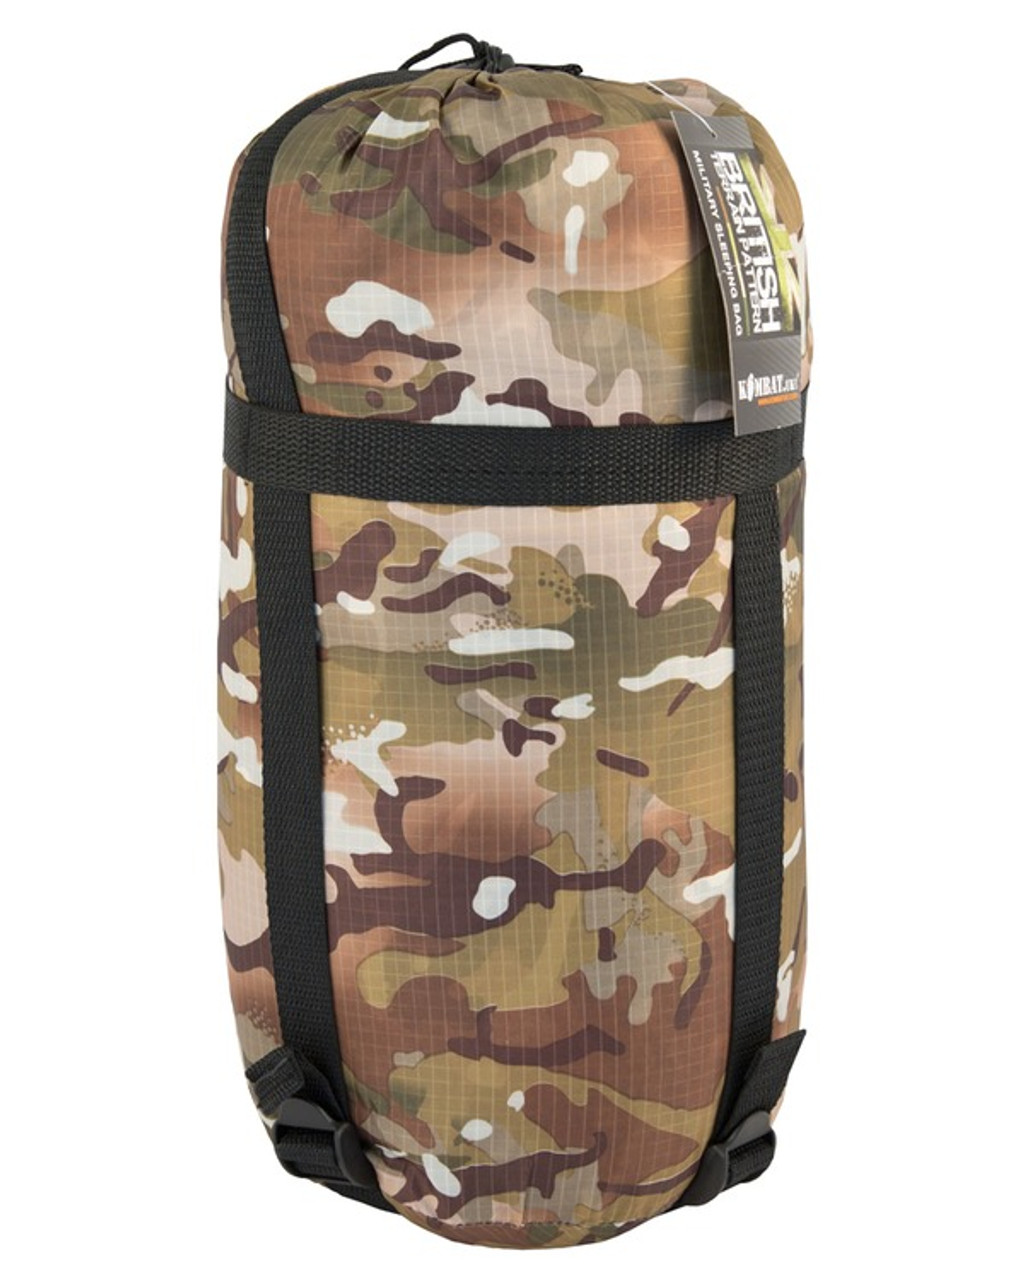 Military Sleeping Bag - BTP